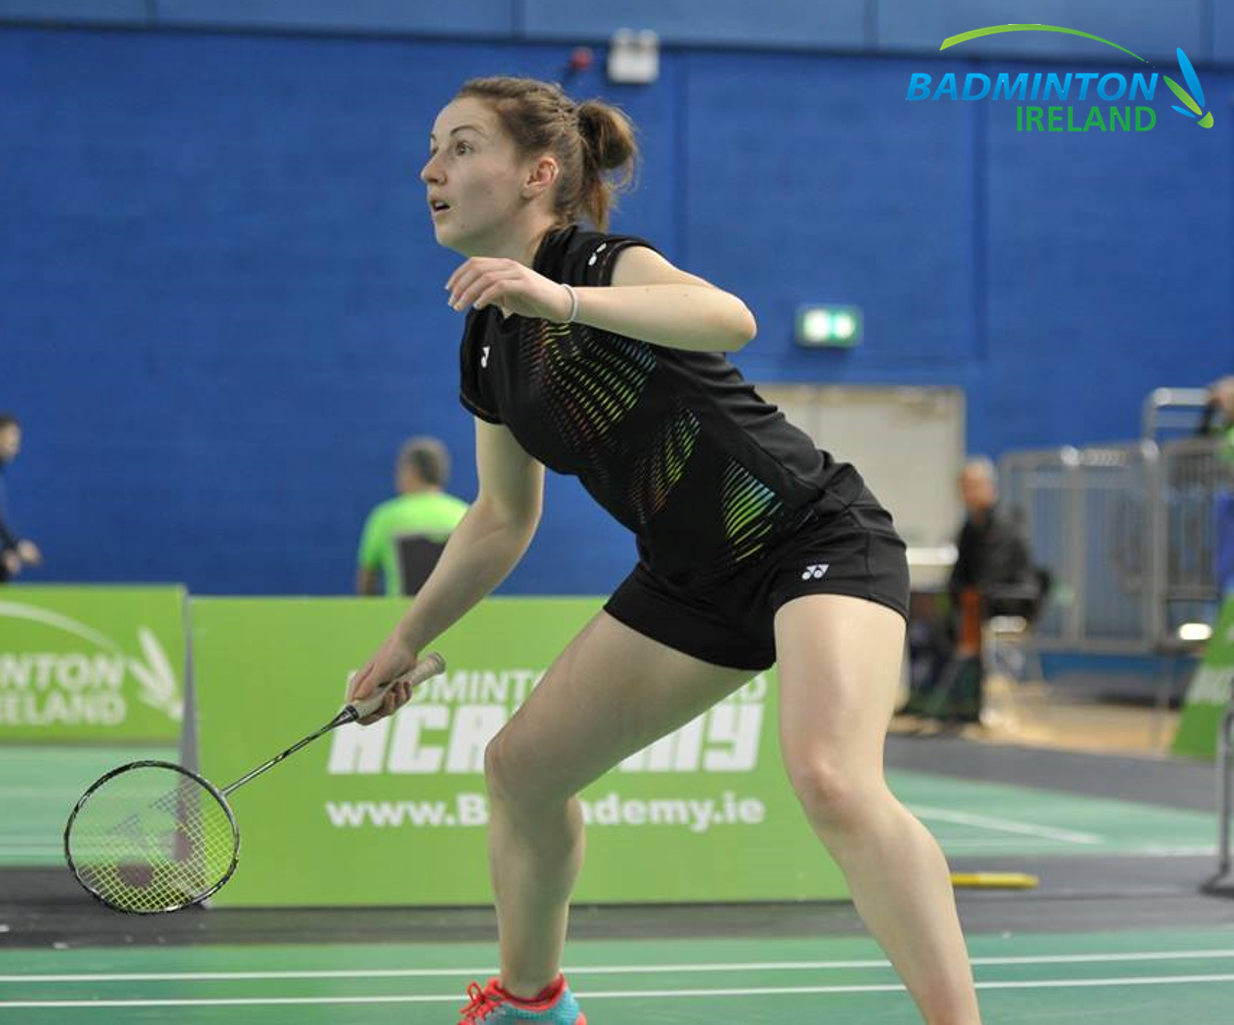 Square Stance - 6 Ways to improve your badminton movement